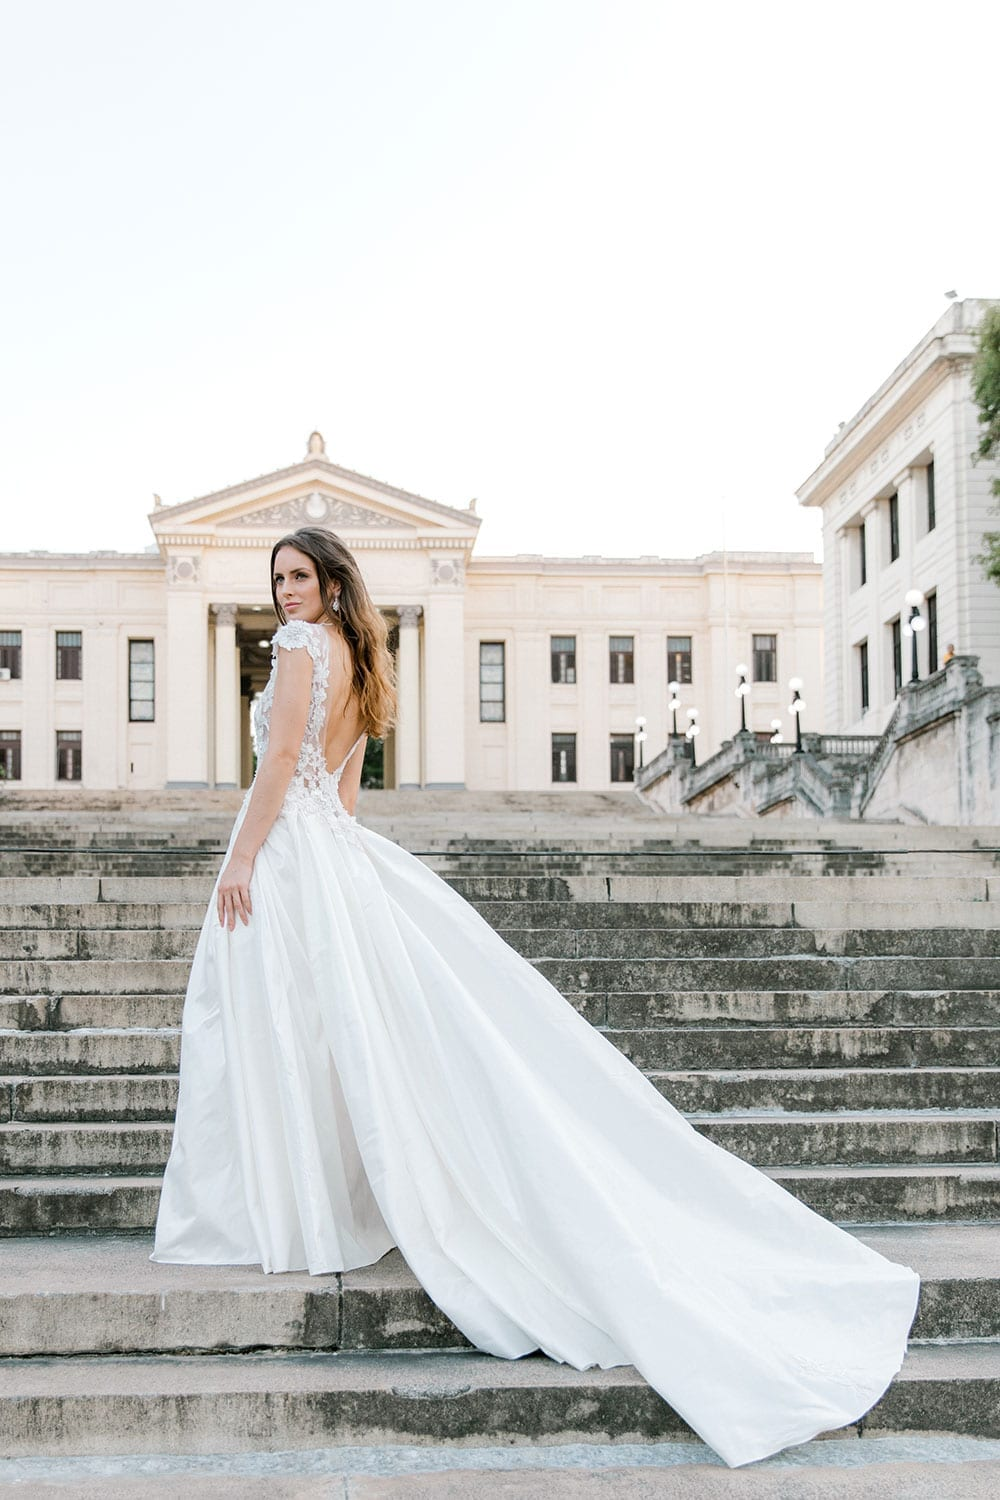 Model wearing Vinka Design Annalie Wedding Dress, a Beaded Lace High Neck Silk Wedding Gown on steps in Havana with dress flowing